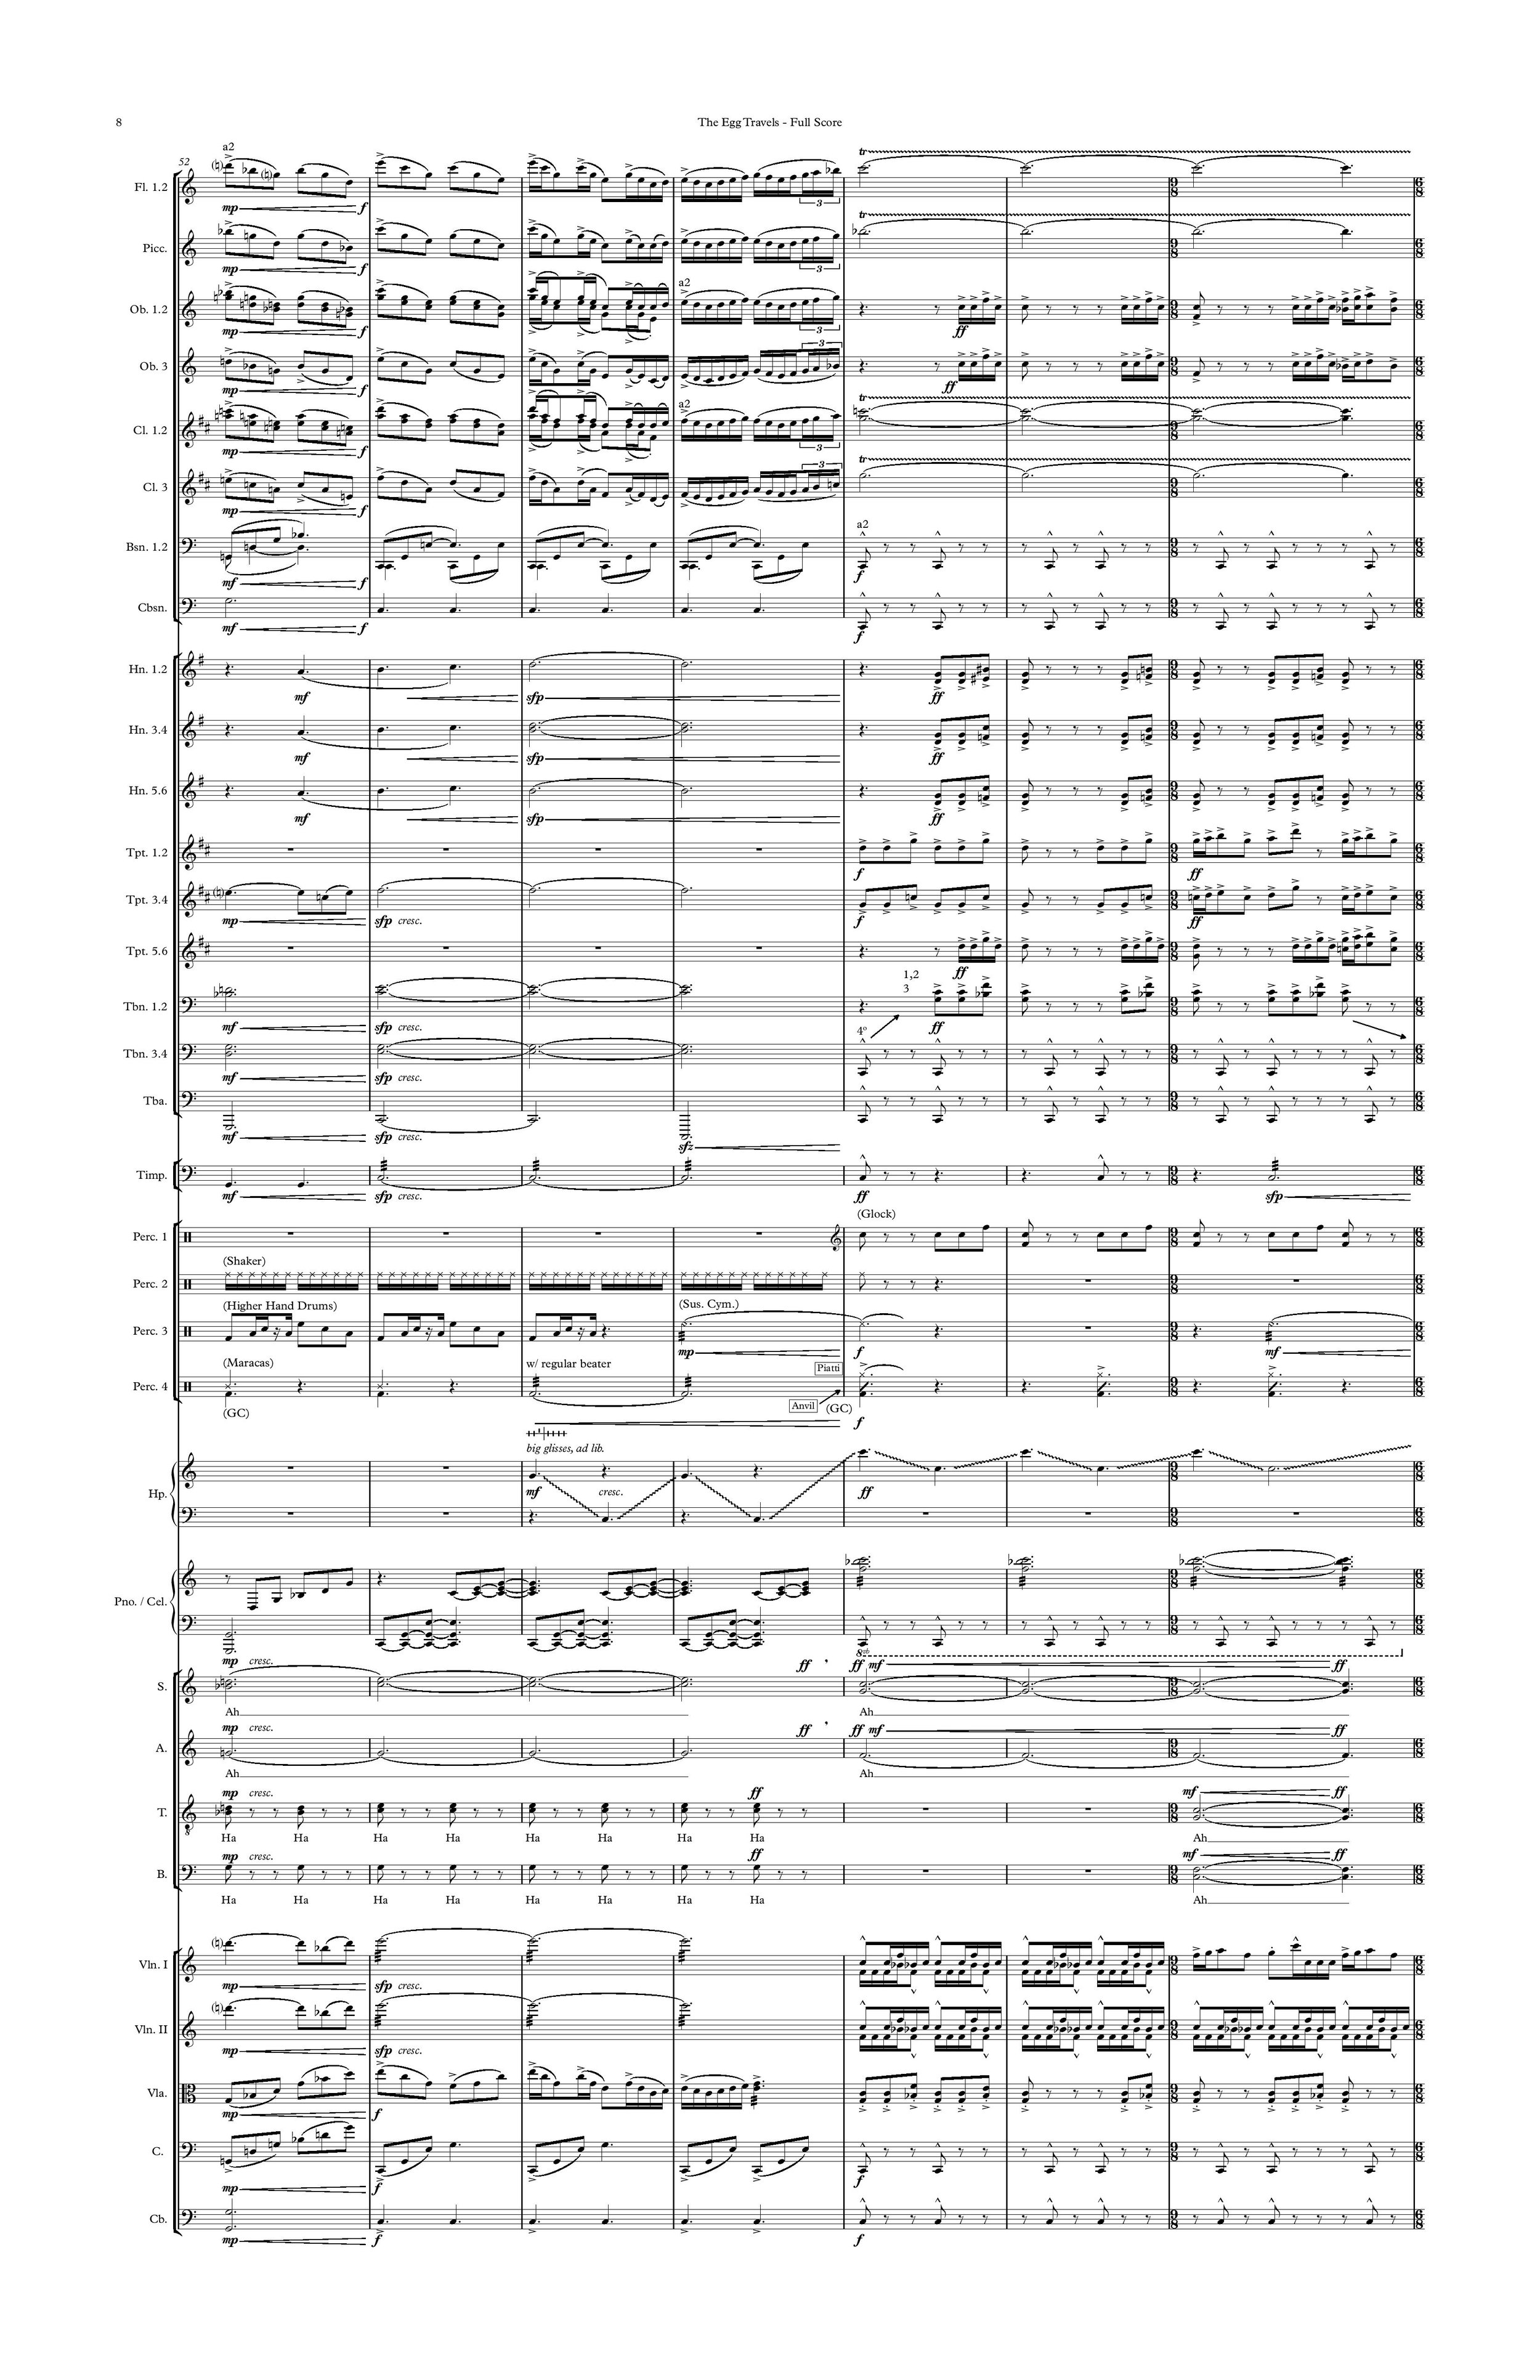 The Egg Travels - Full Score-page-008.jpg